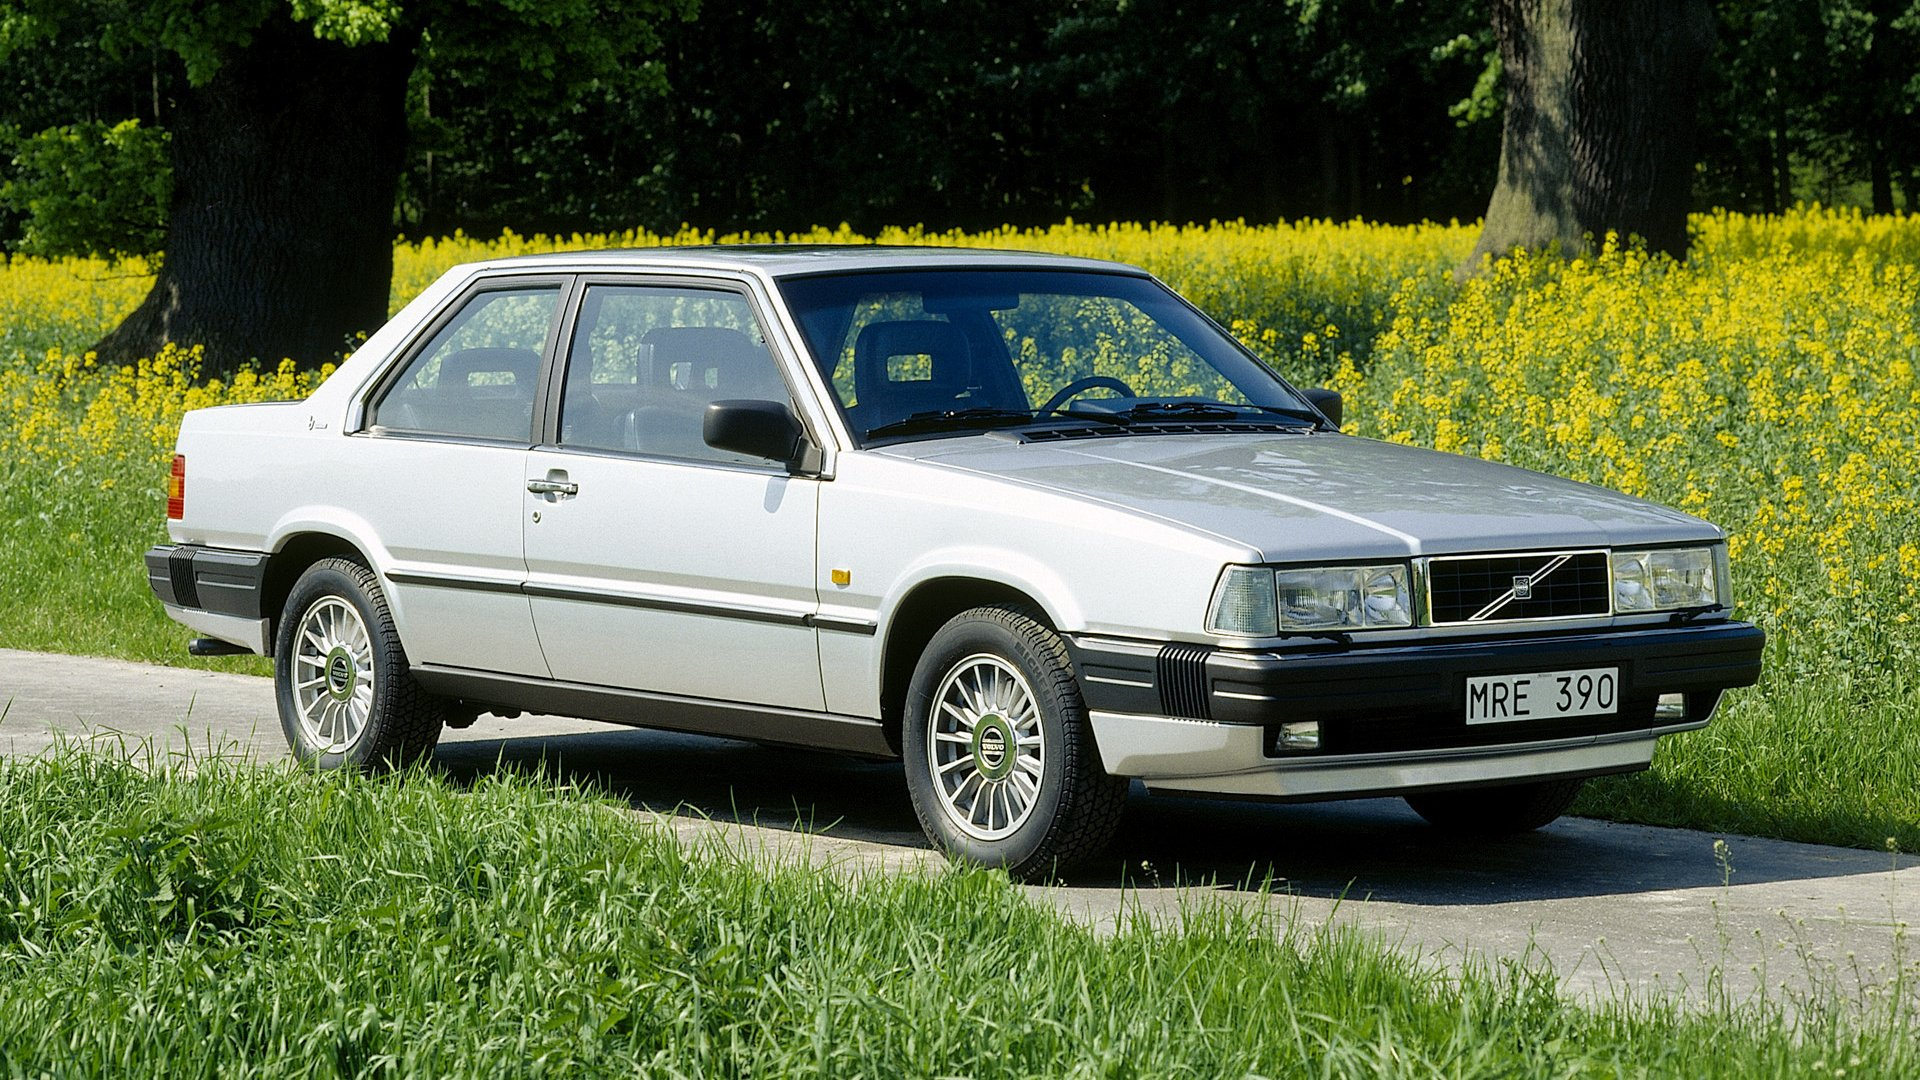 Vehicles - Volvo 700 Series  Coupé White Car Wallpaper